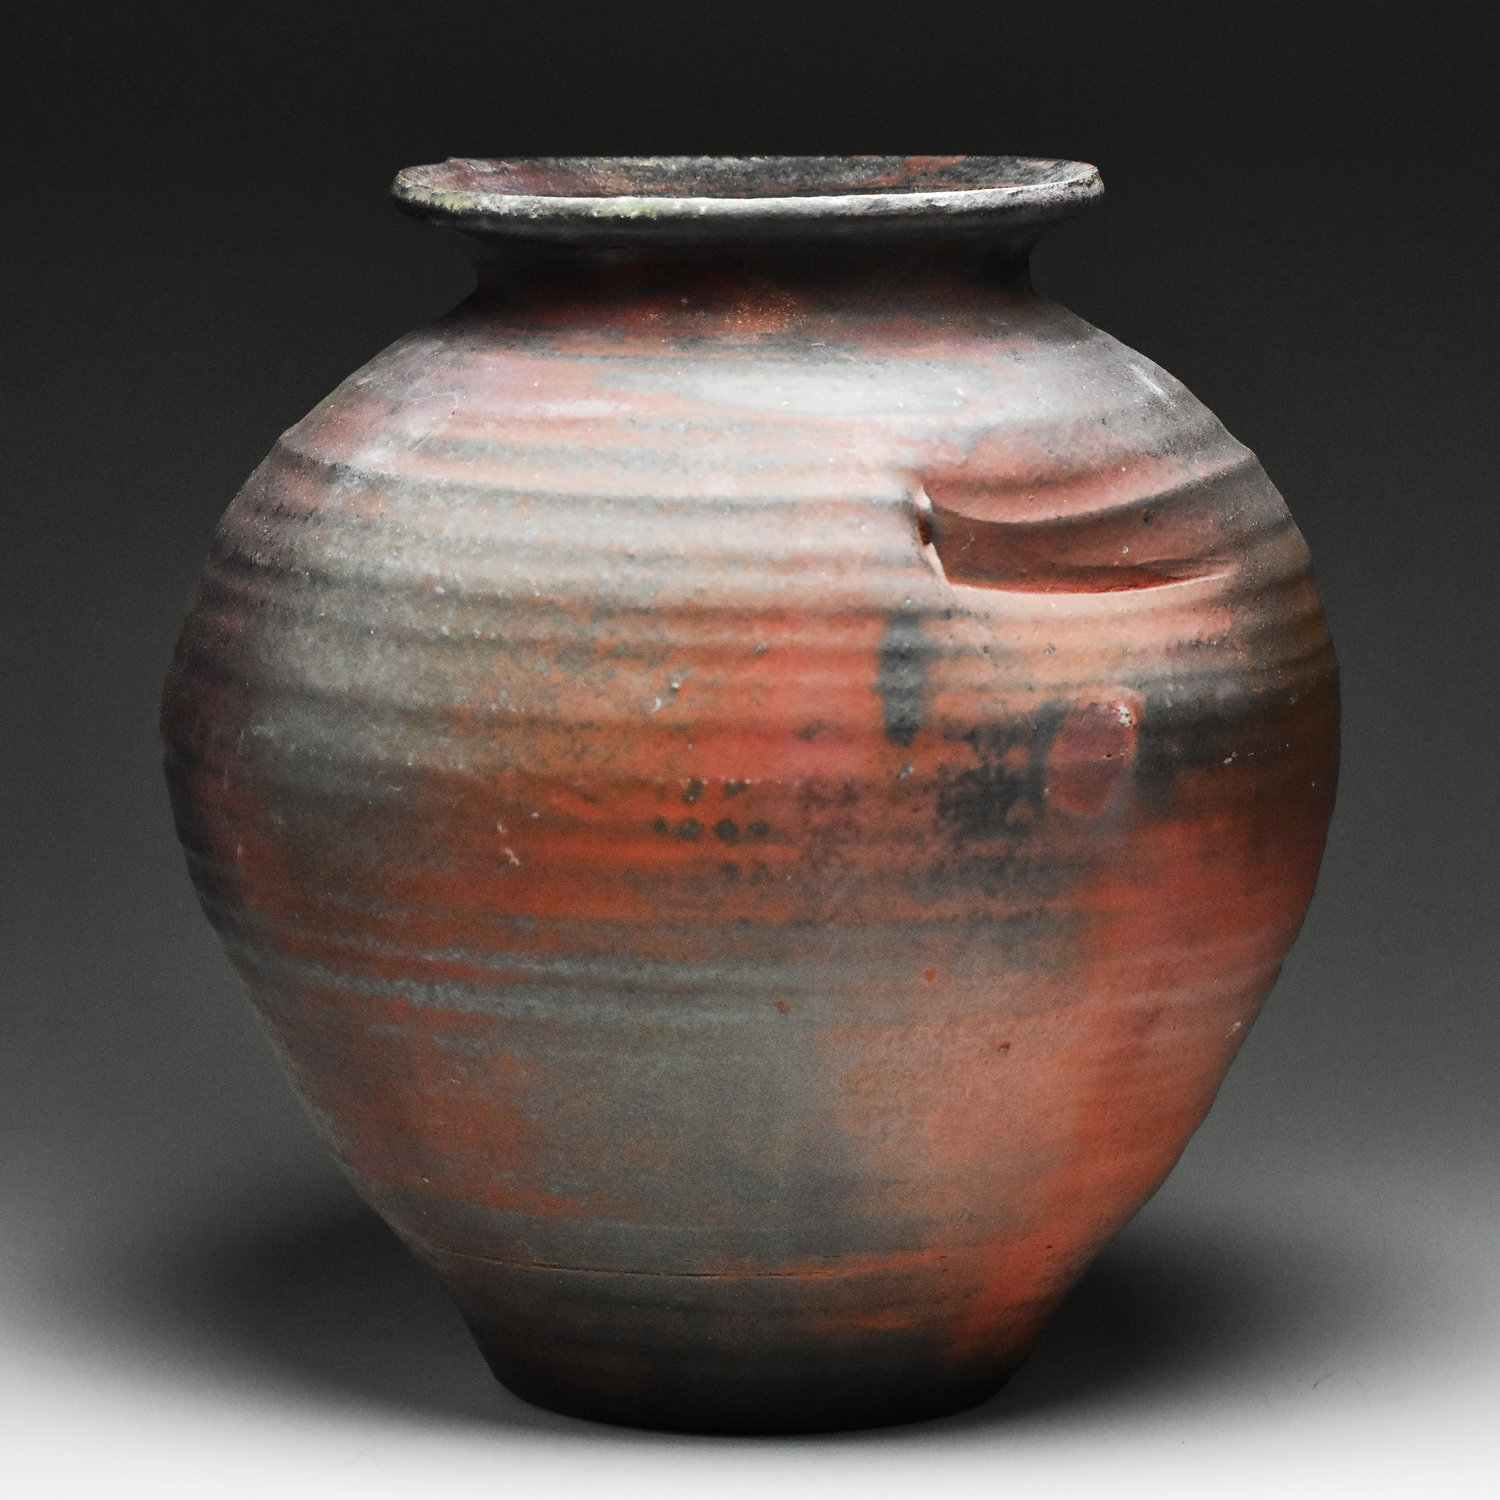 Micah Thanhauser, large vase, native clay, wheel thrown, wood fired